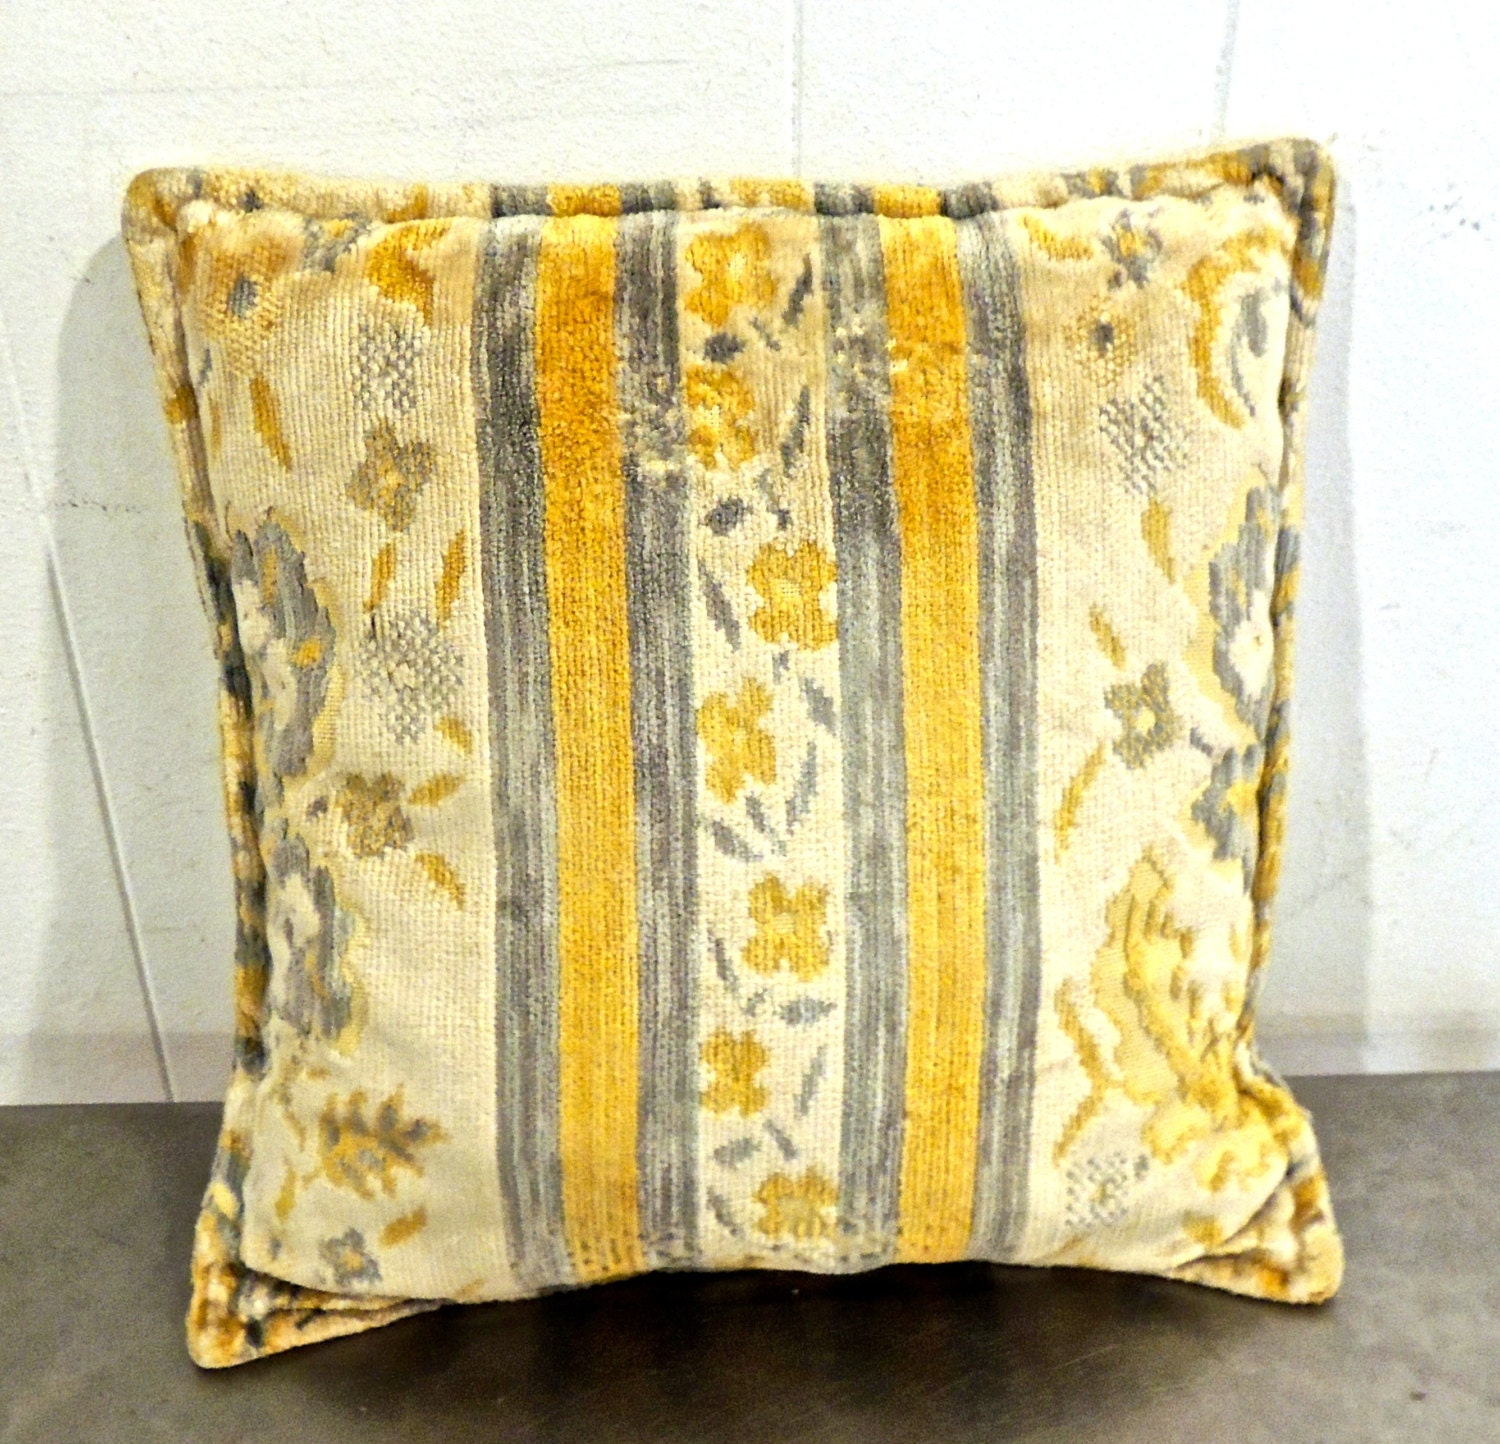 Mid Century Throw Pillow : vintage velvet throw pillows 1960s mid century yellow/grey